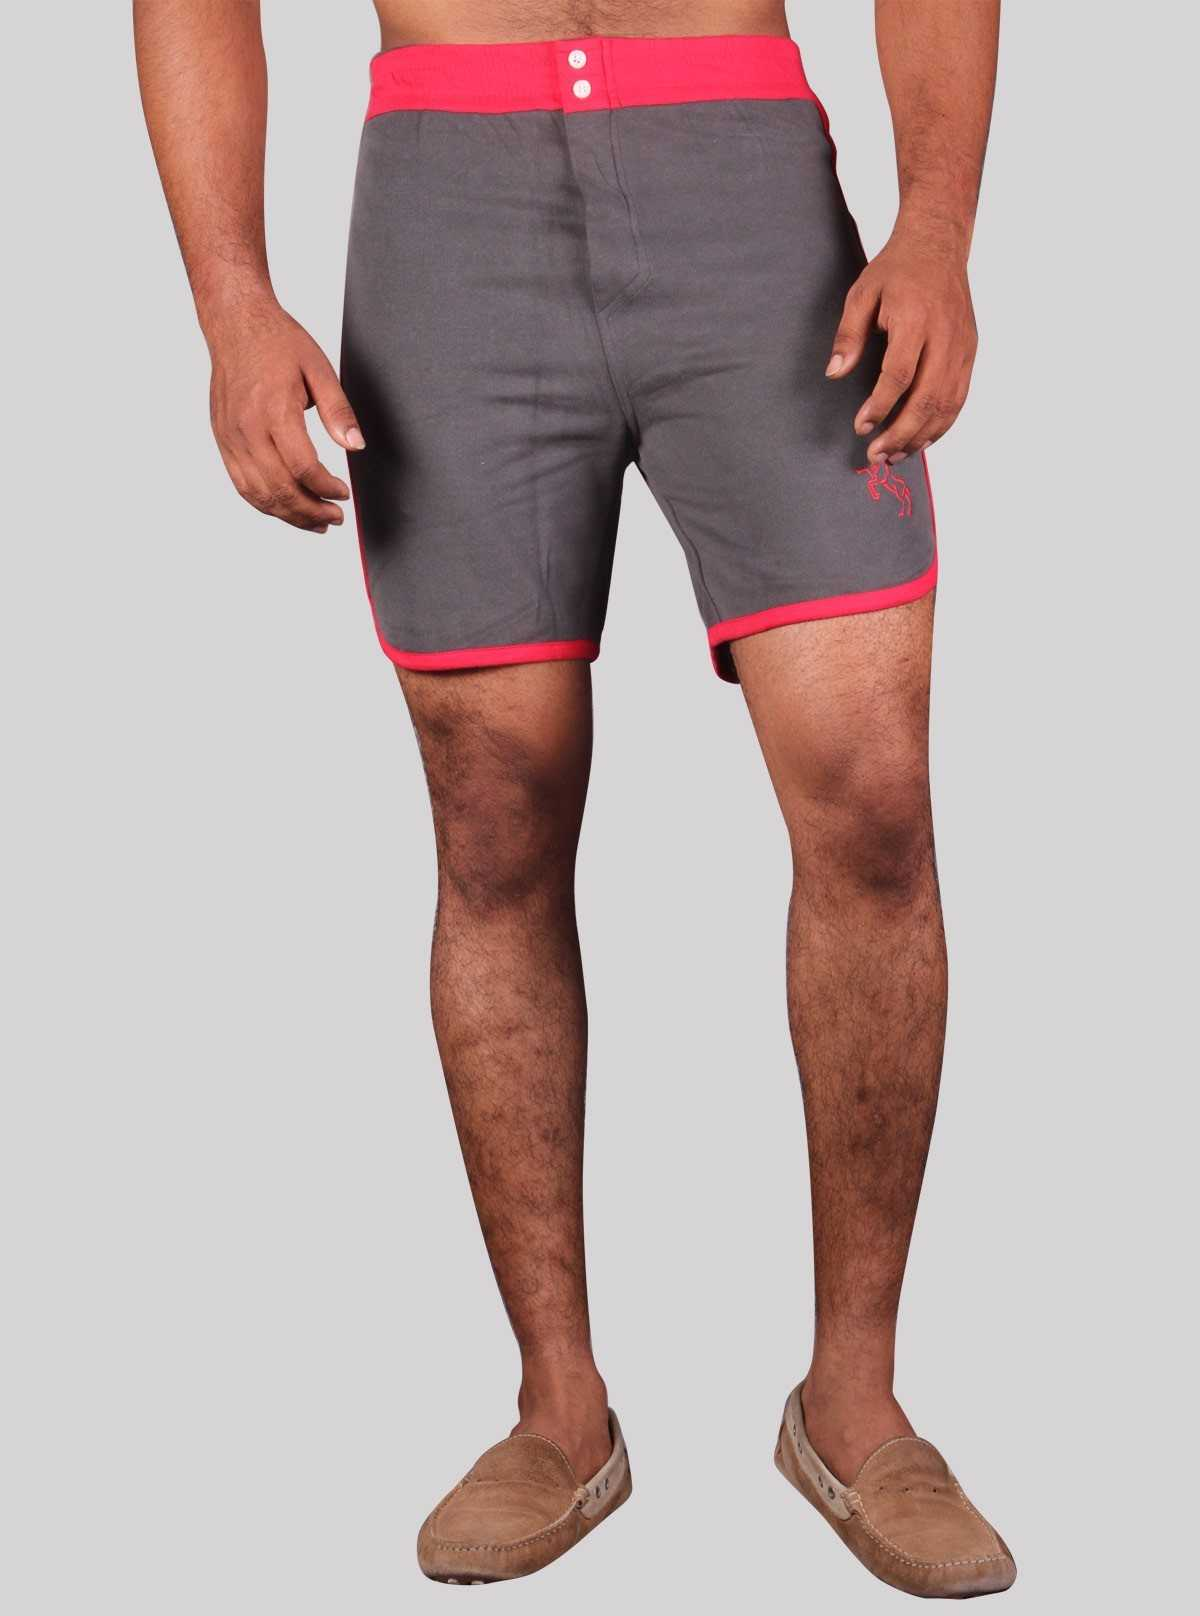 Red Contrast Fleece Shorts Boer and Fitch - 1